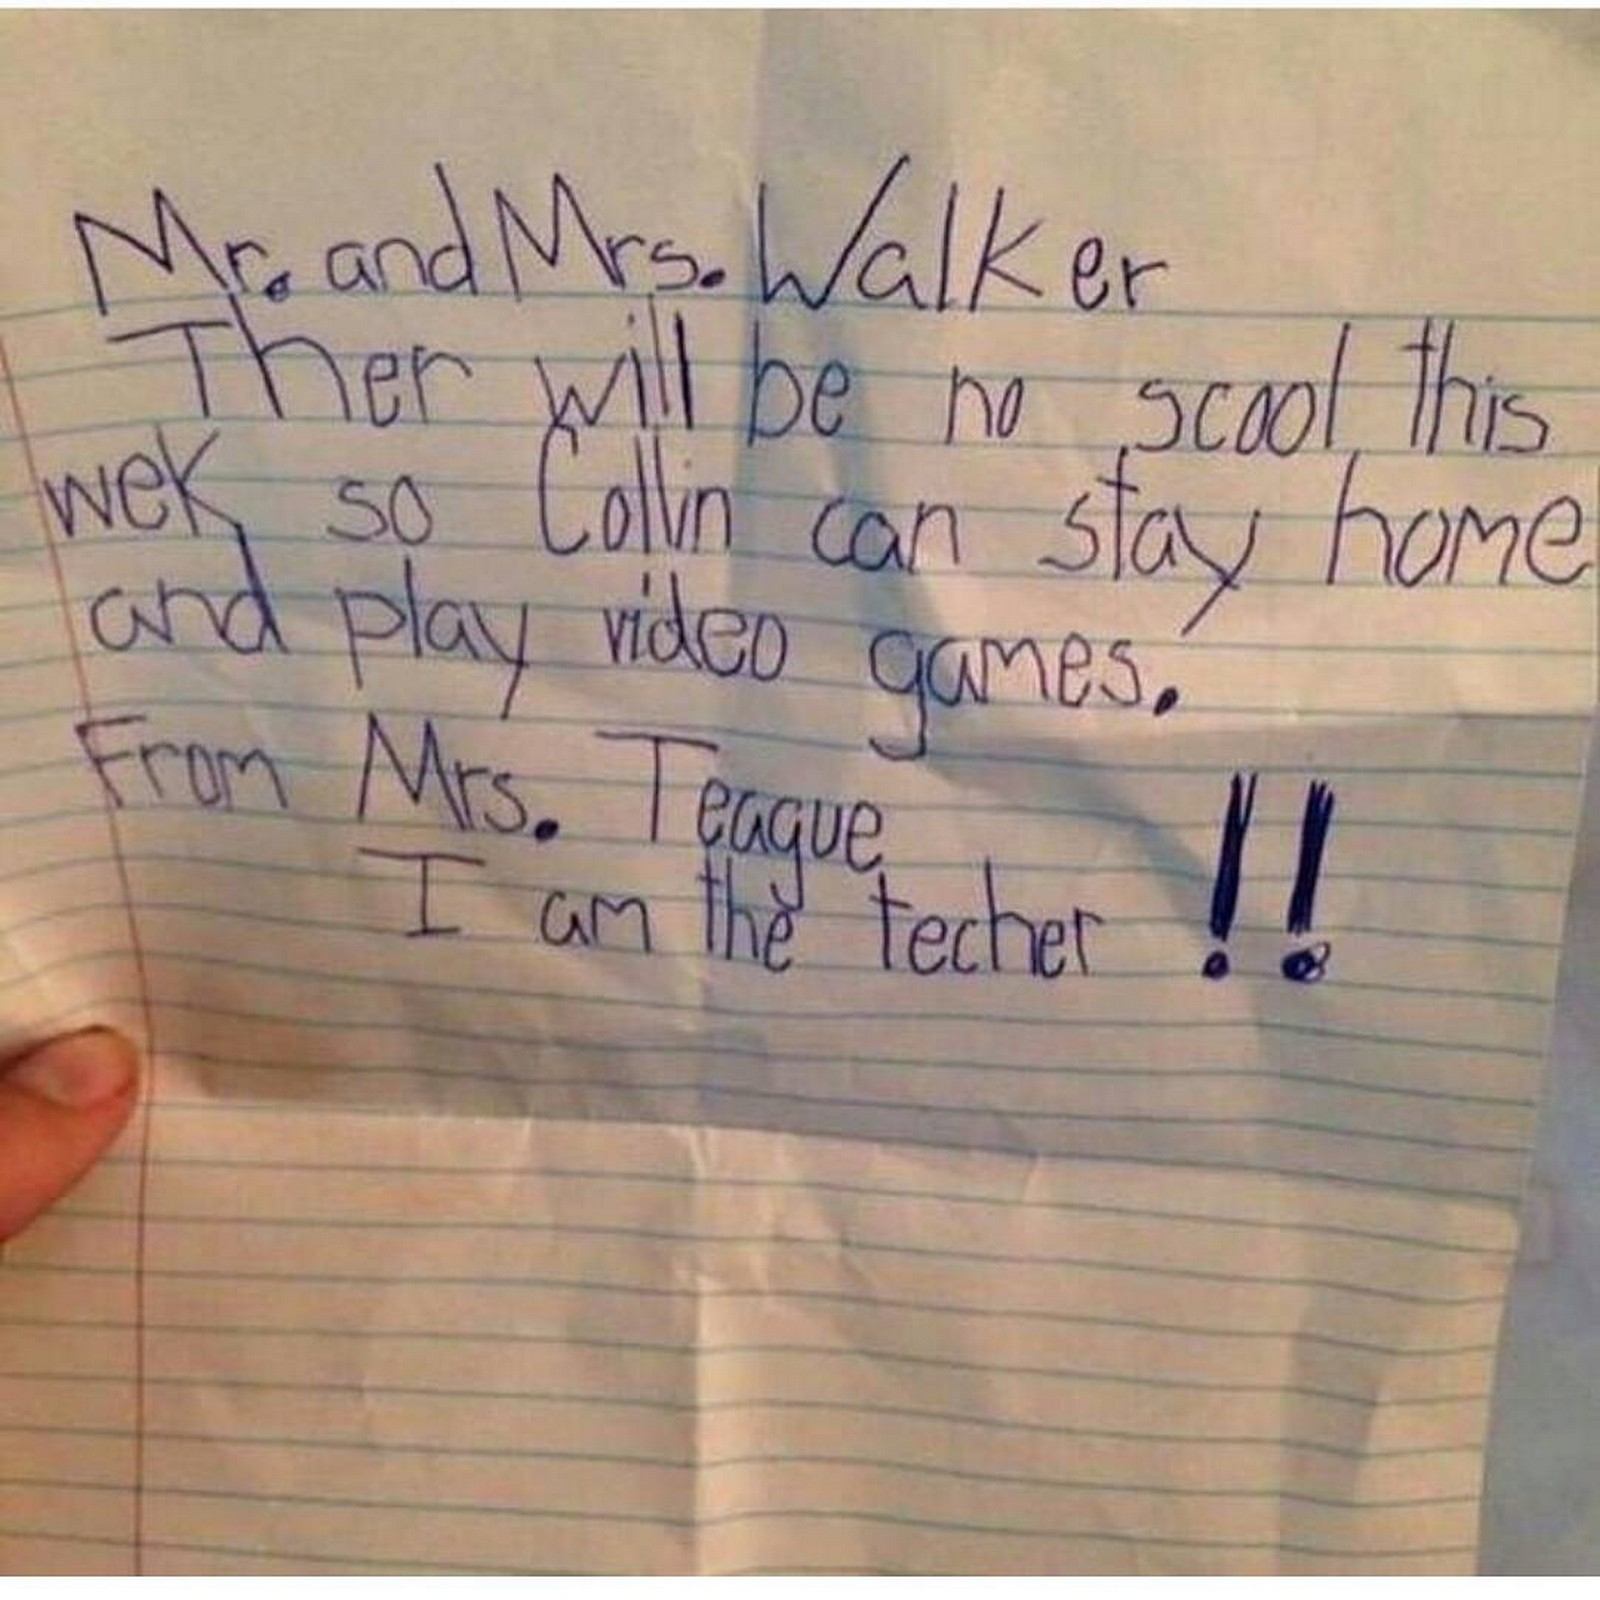 17 Teacher Notes - Of course, there is always that time when kids try to make their own teacher's note to bring home.